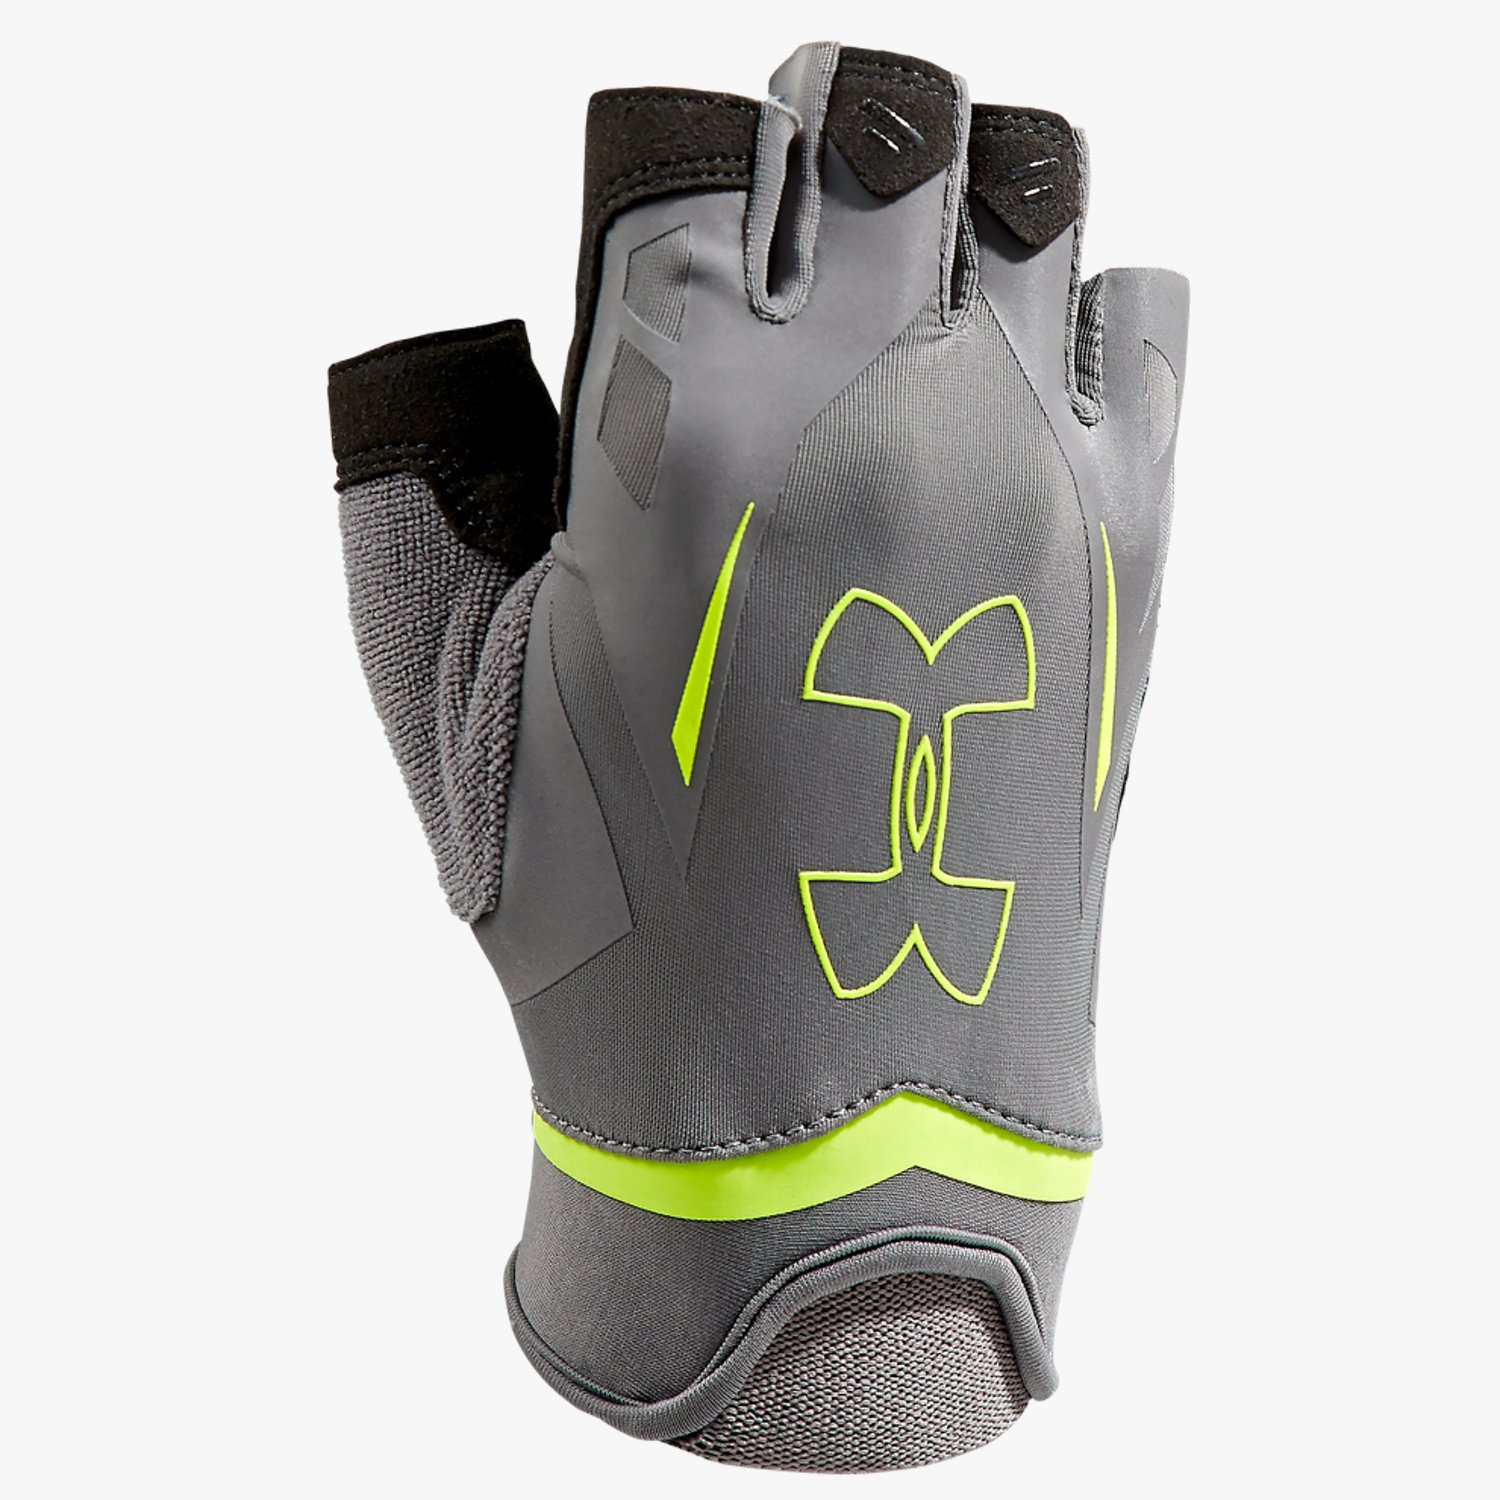 Under Armour UA Flux Half-Finger Training Gloves Graphite/High-Vis Yellow/Black-30